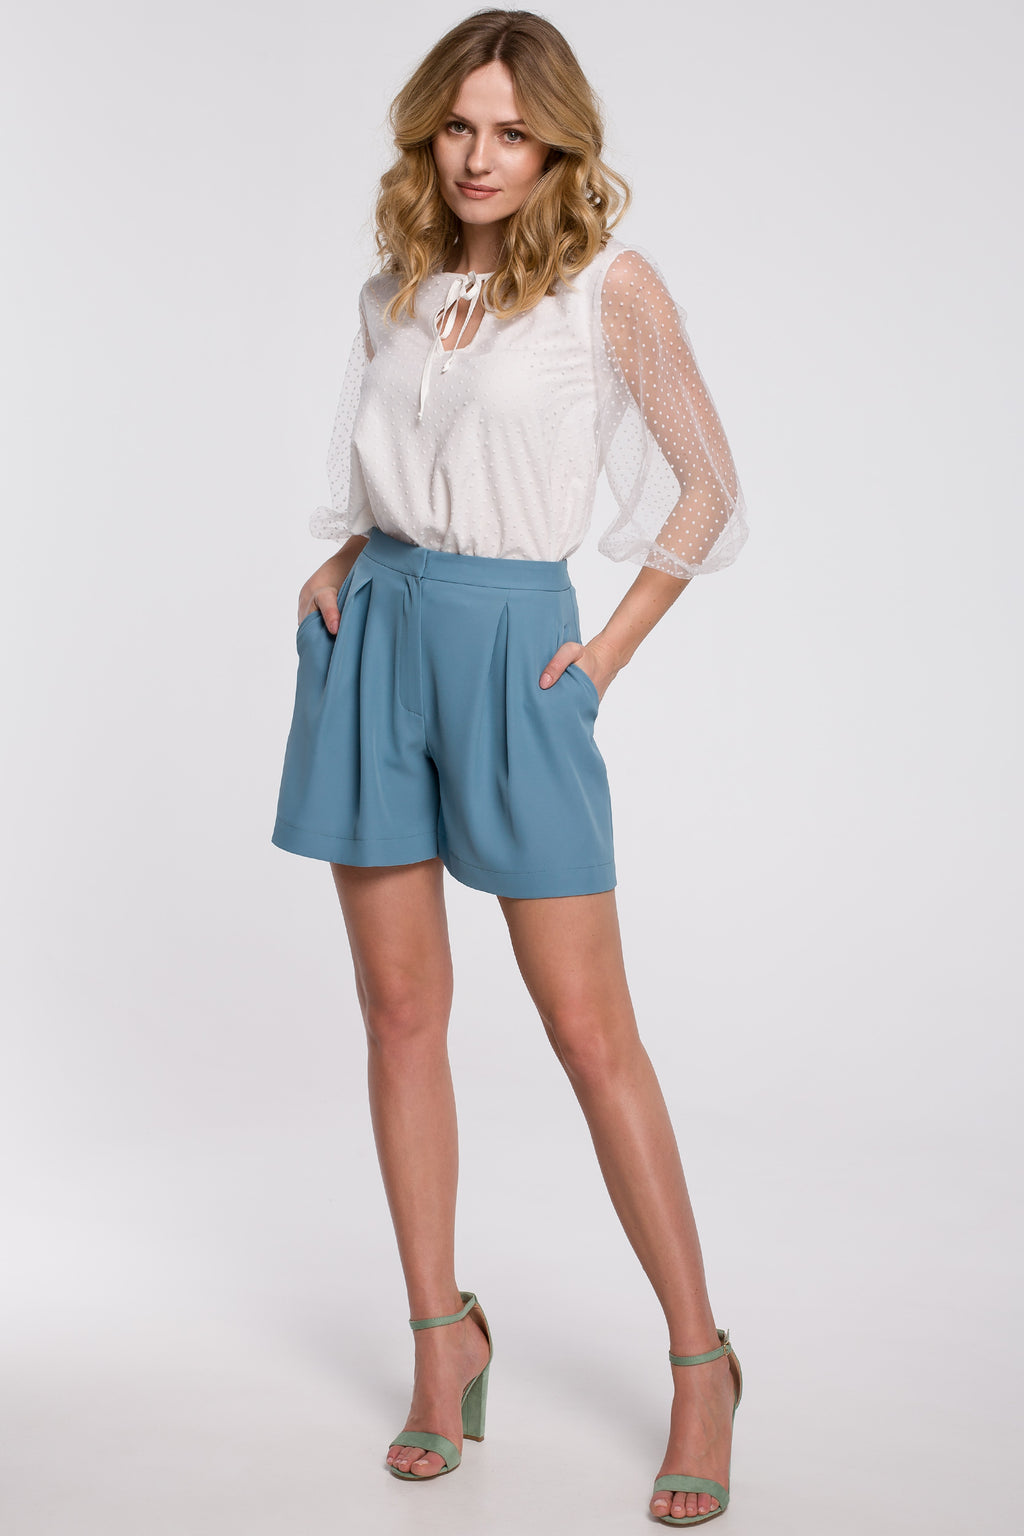 Sky Blue Relaxed Shorts With Front Pleats - So Chic Boutique